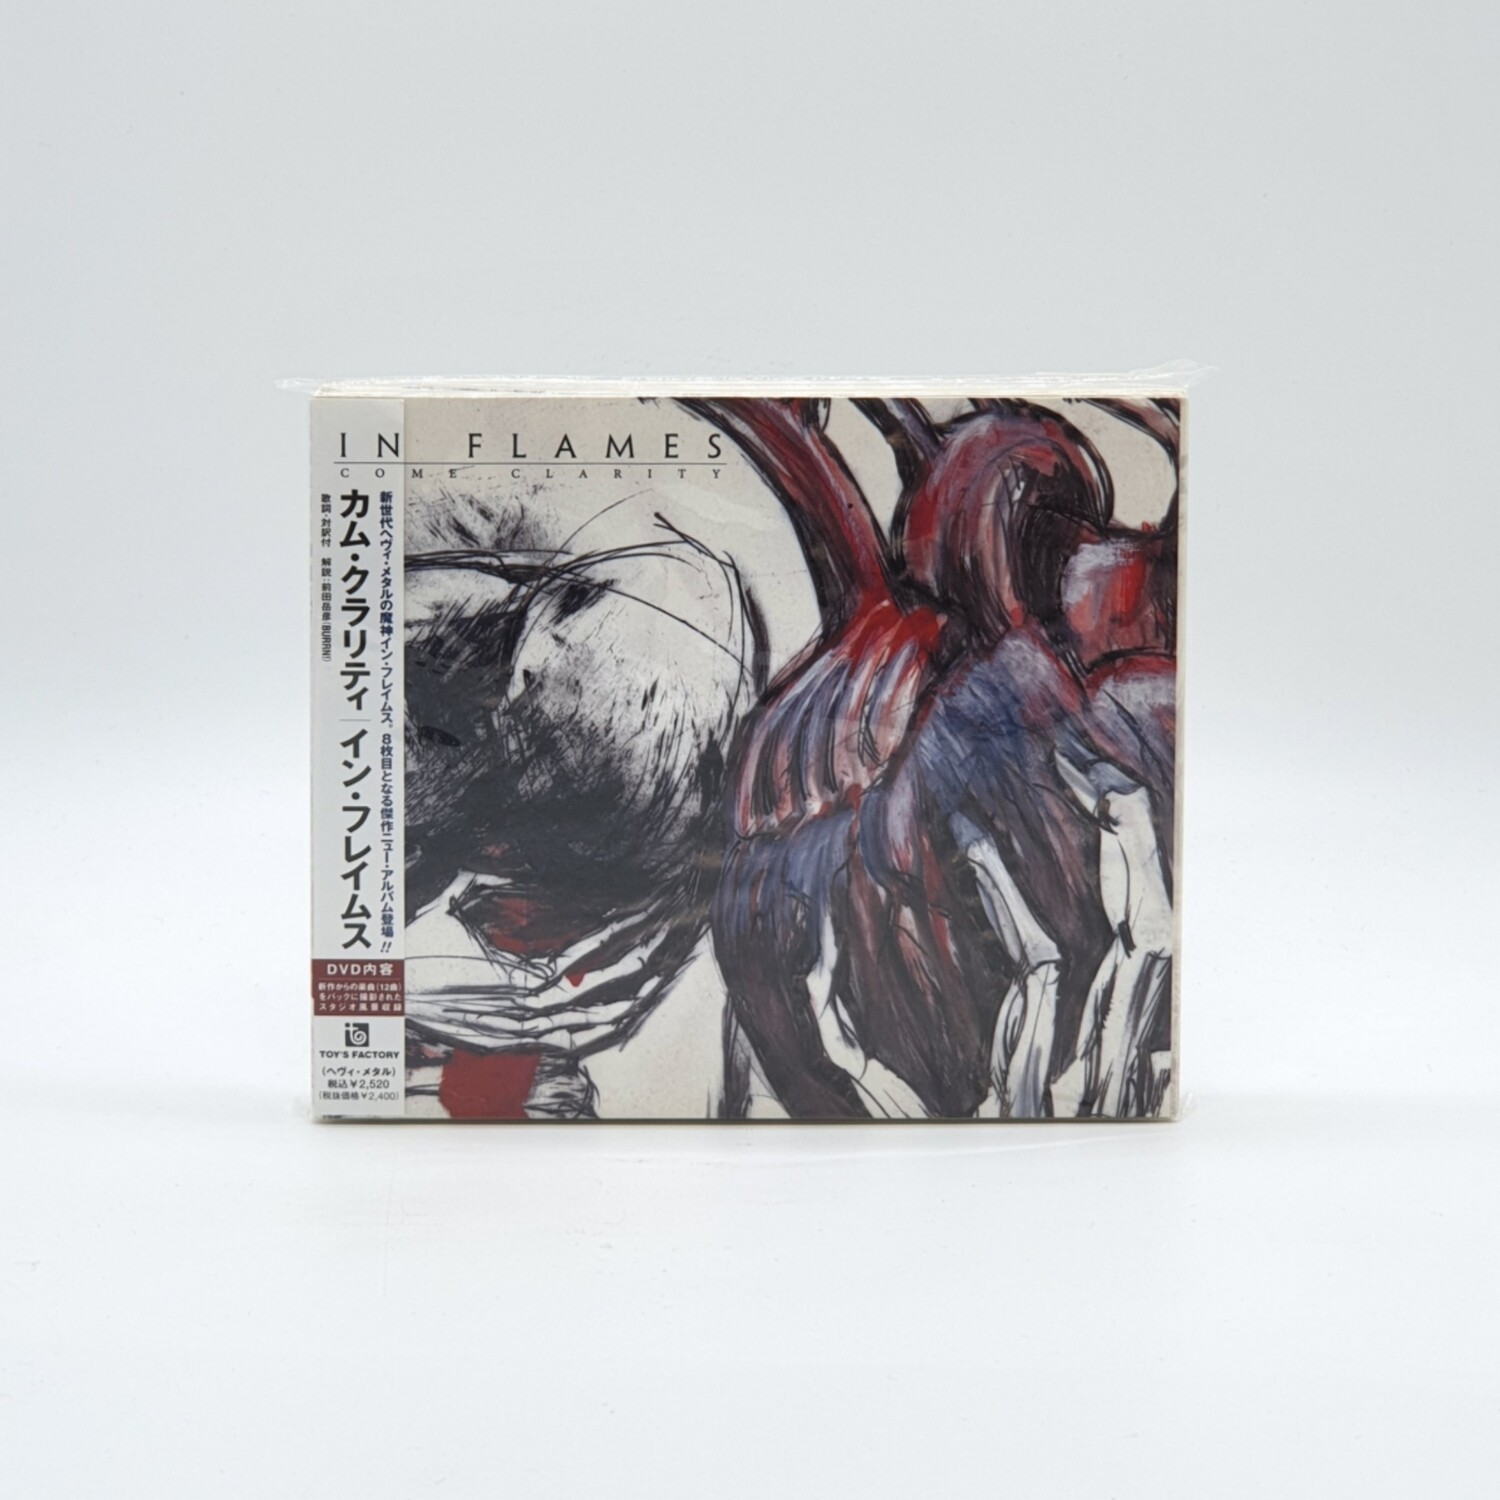 [USED] IN FLAMES -COME CLARITY- CD (JAPAN PRESS)